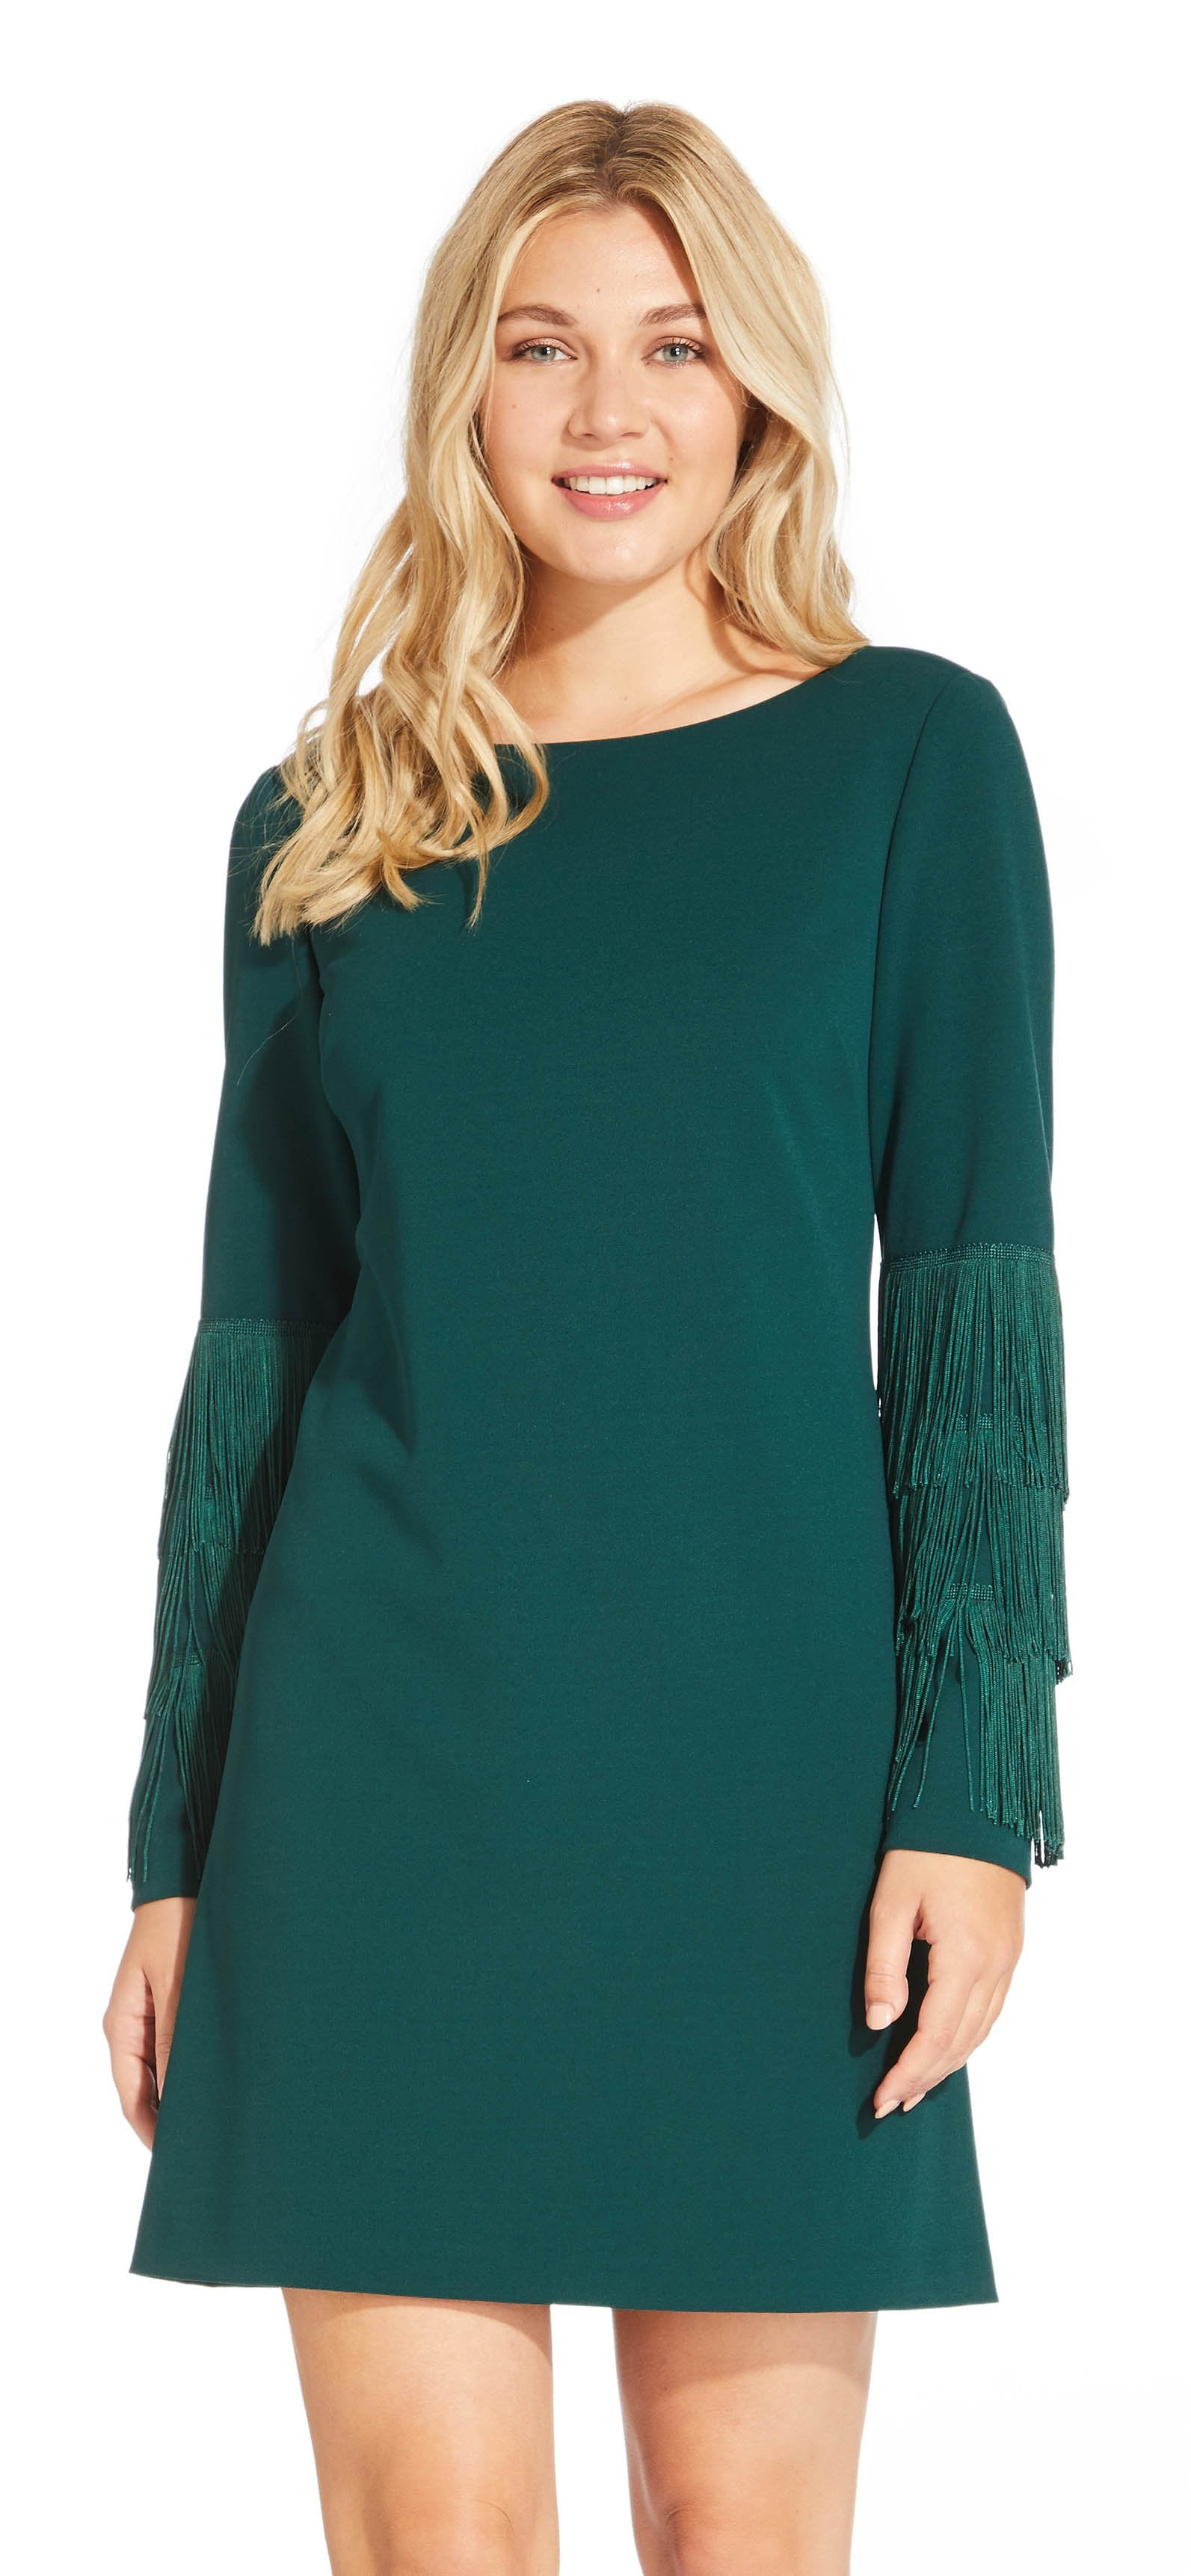 Adrianna Papell - AP1D102864 Long Sleeves Fringe Cocktail Dress In Green